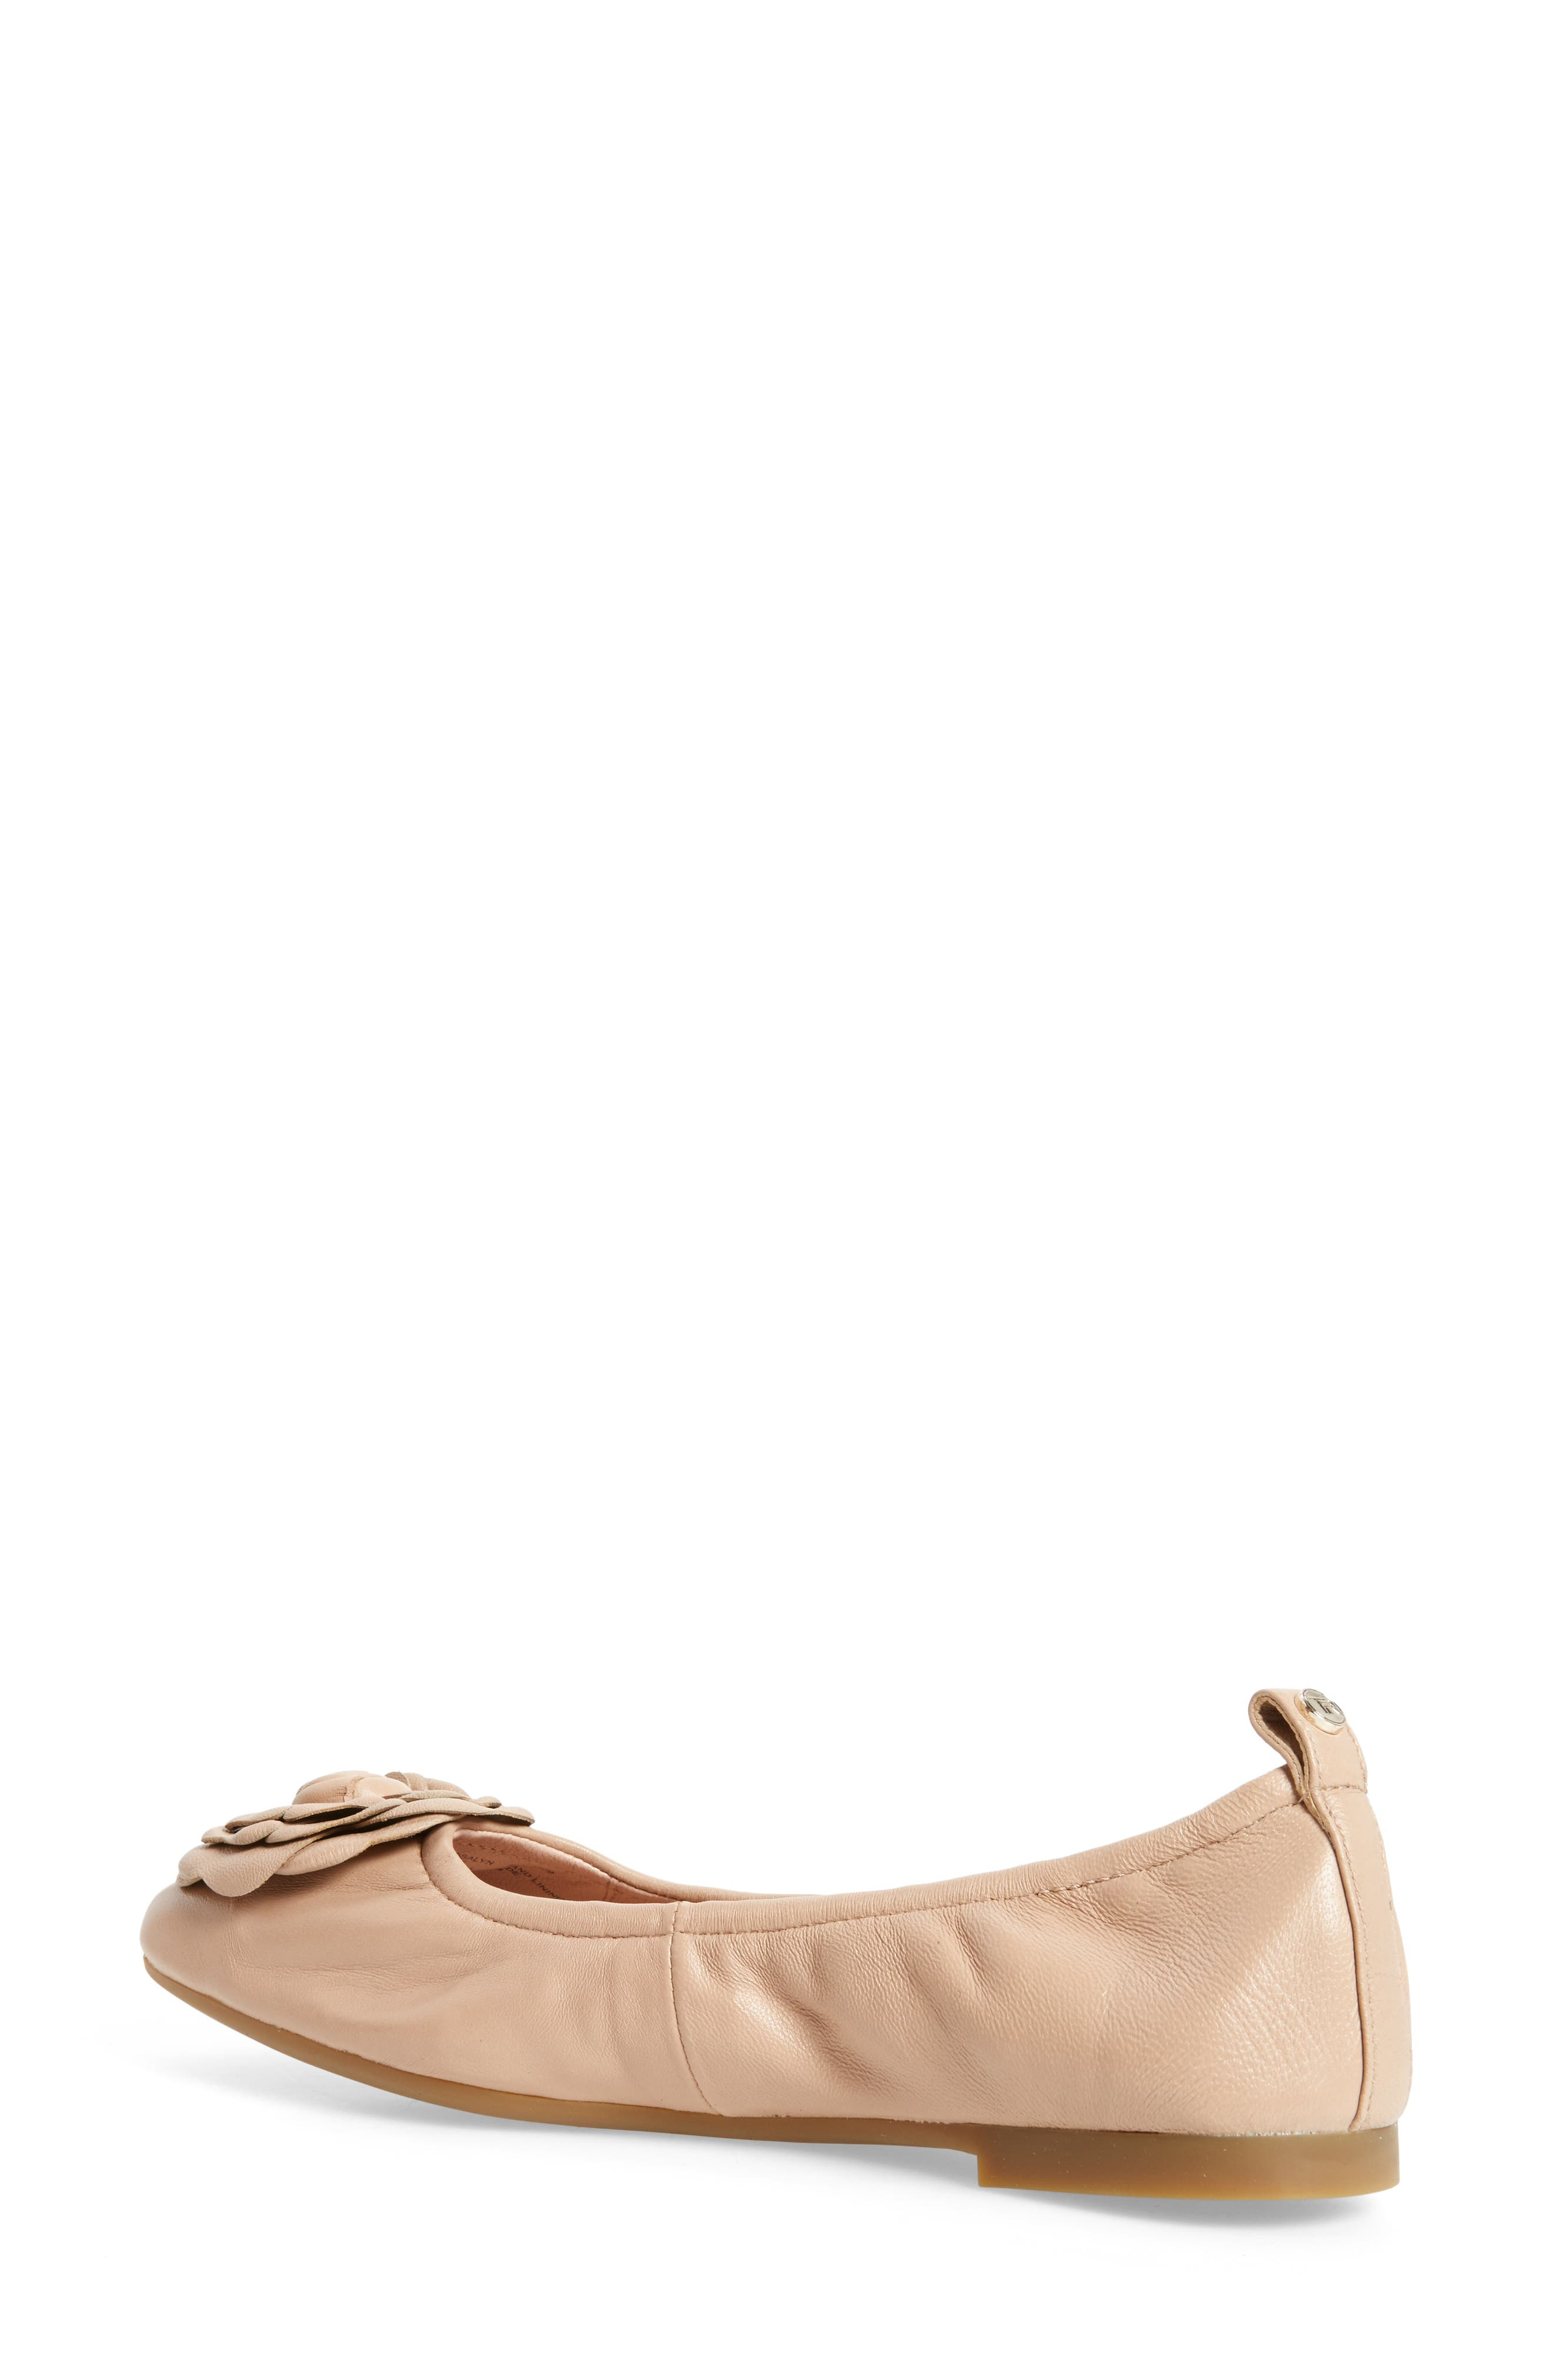 Rosalyn Ballet Flat,                             Alternate thumbnail 2, color,                             Nude Leather